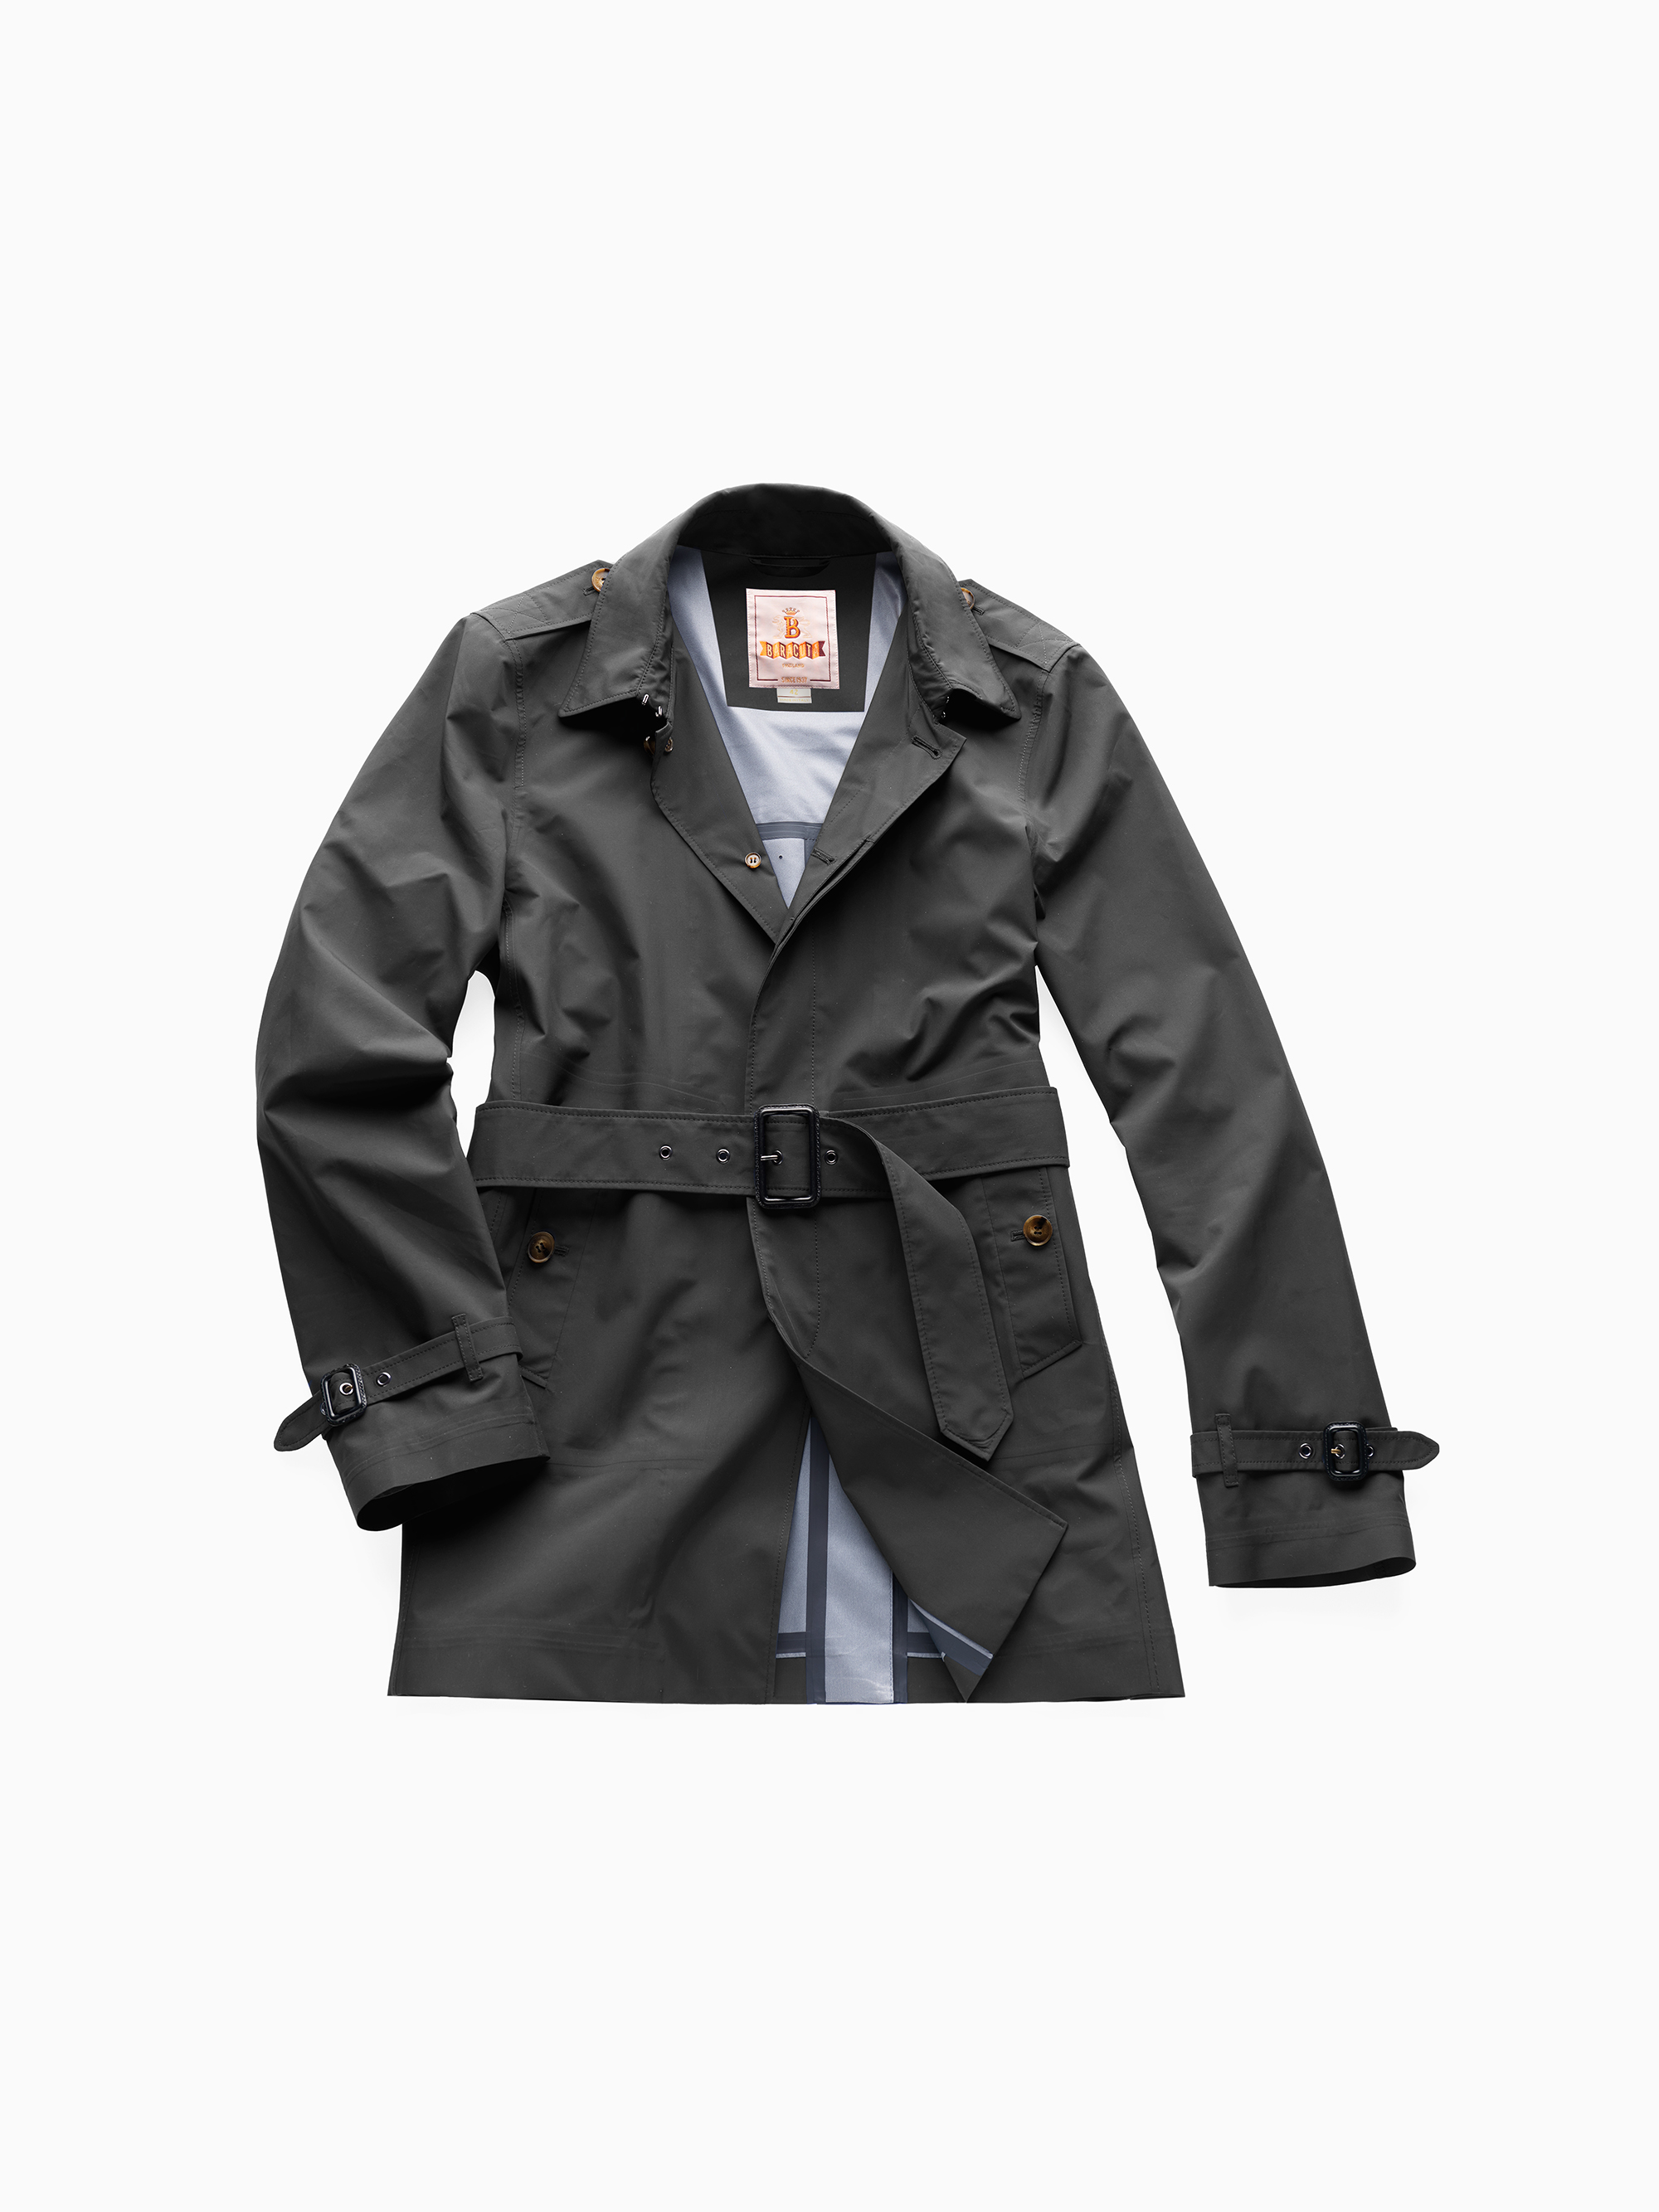 Baracuta short trench